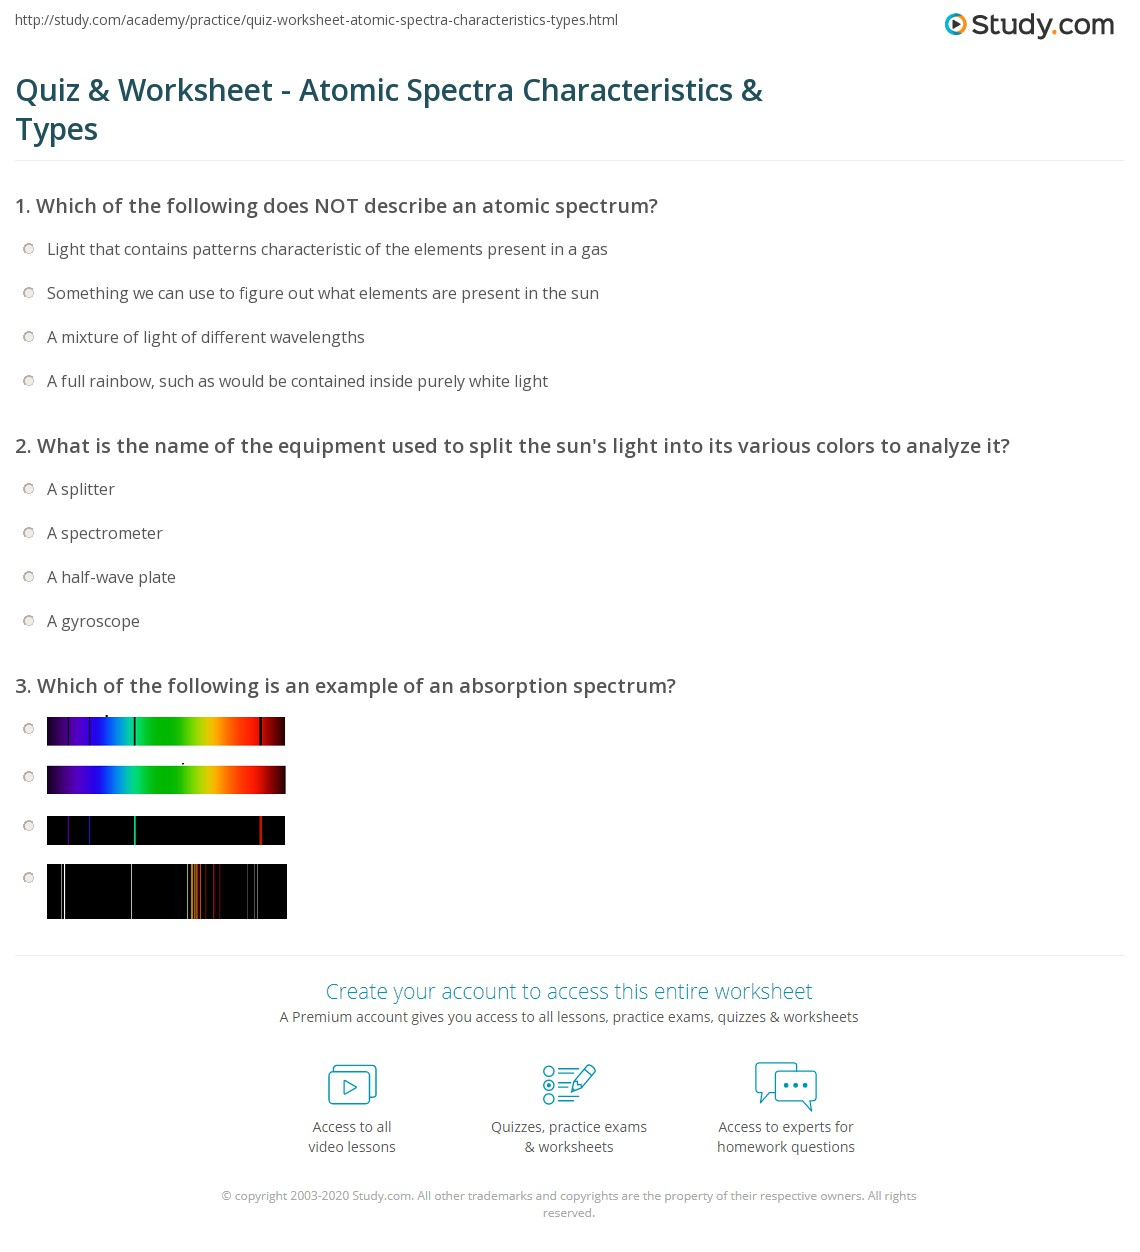 Atomic Spectra Worksheet Answers